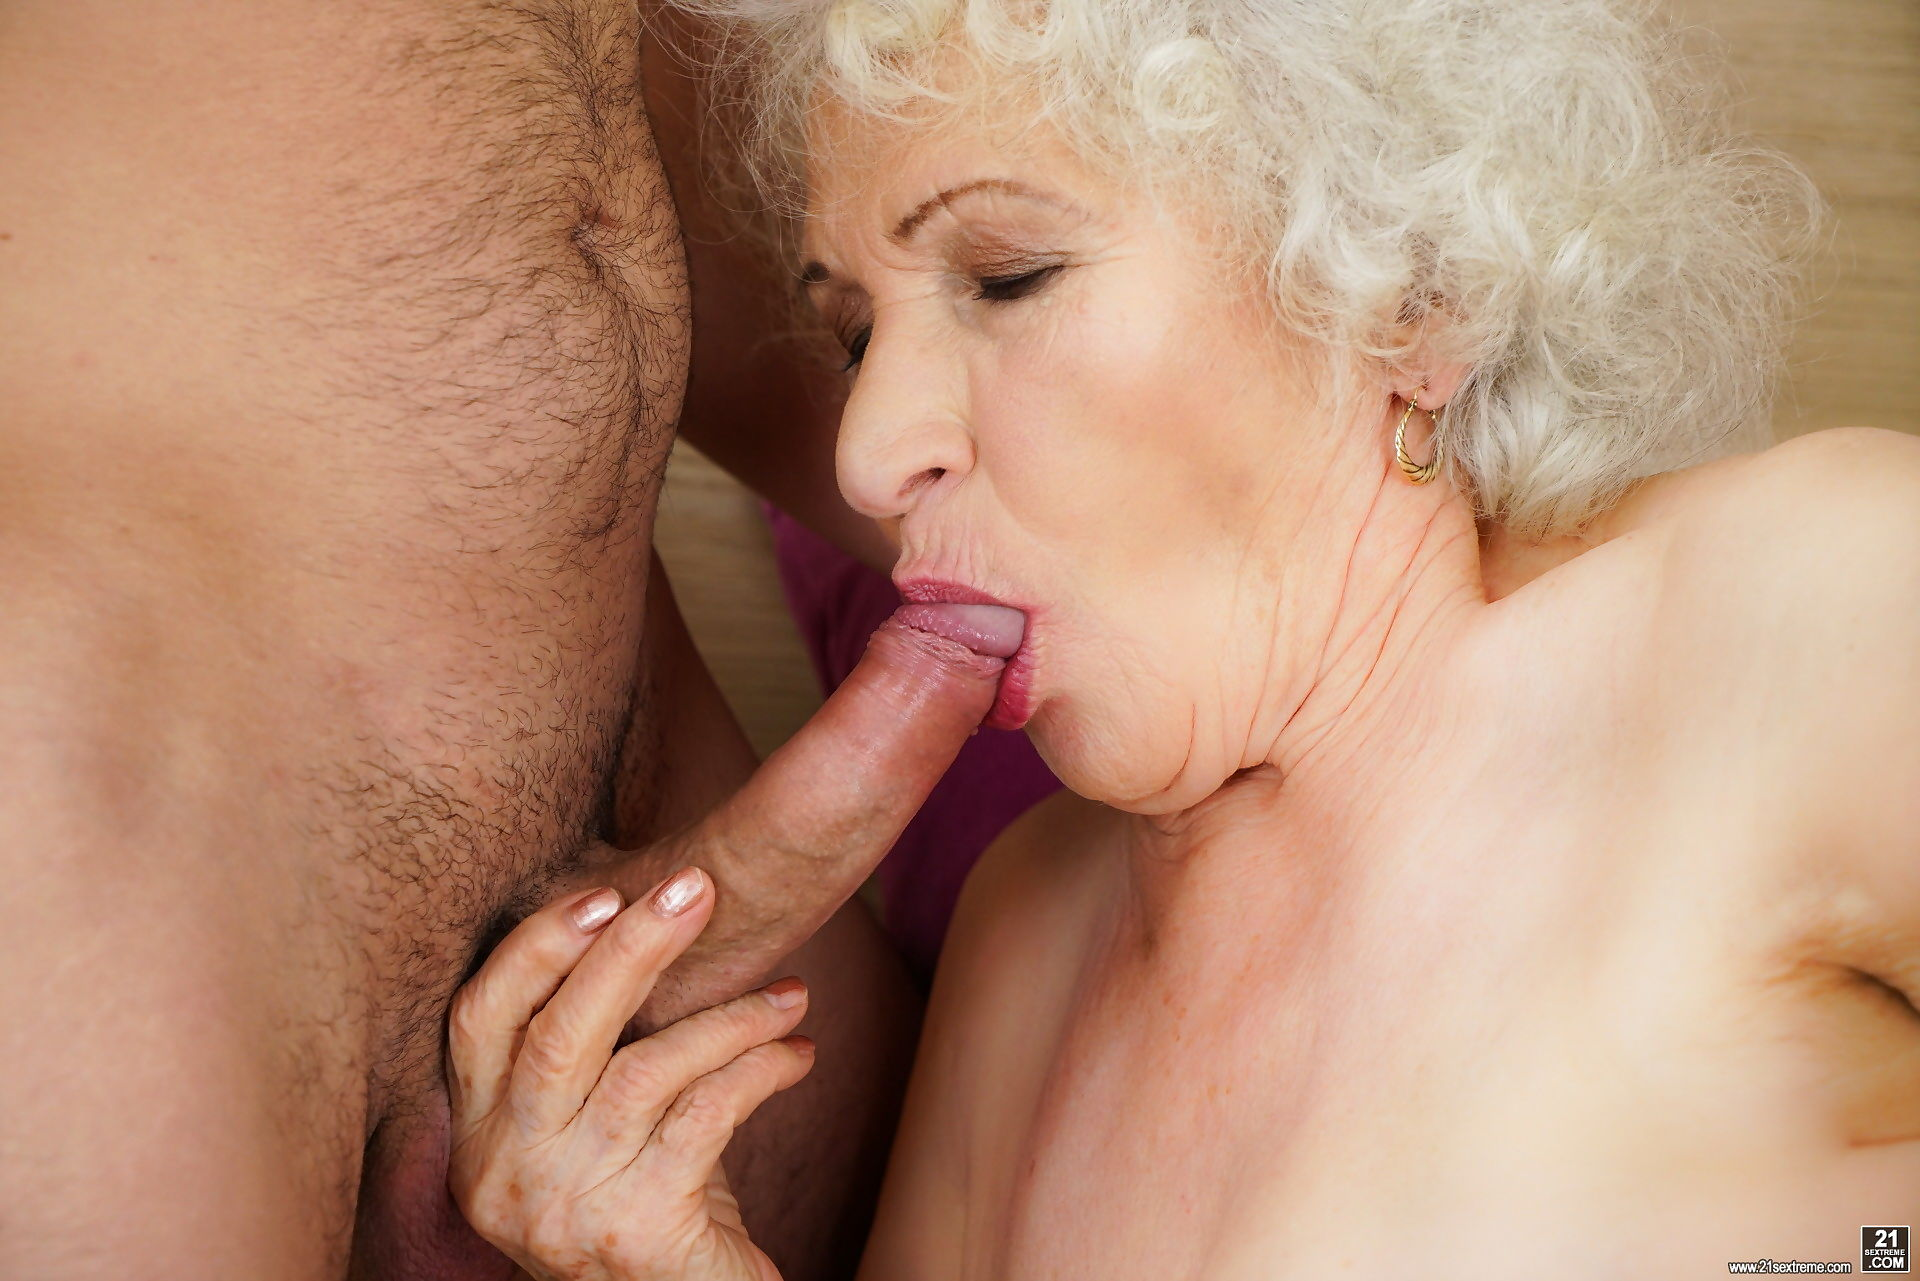 Busty granny norma shared a bed with young rob - part 1881